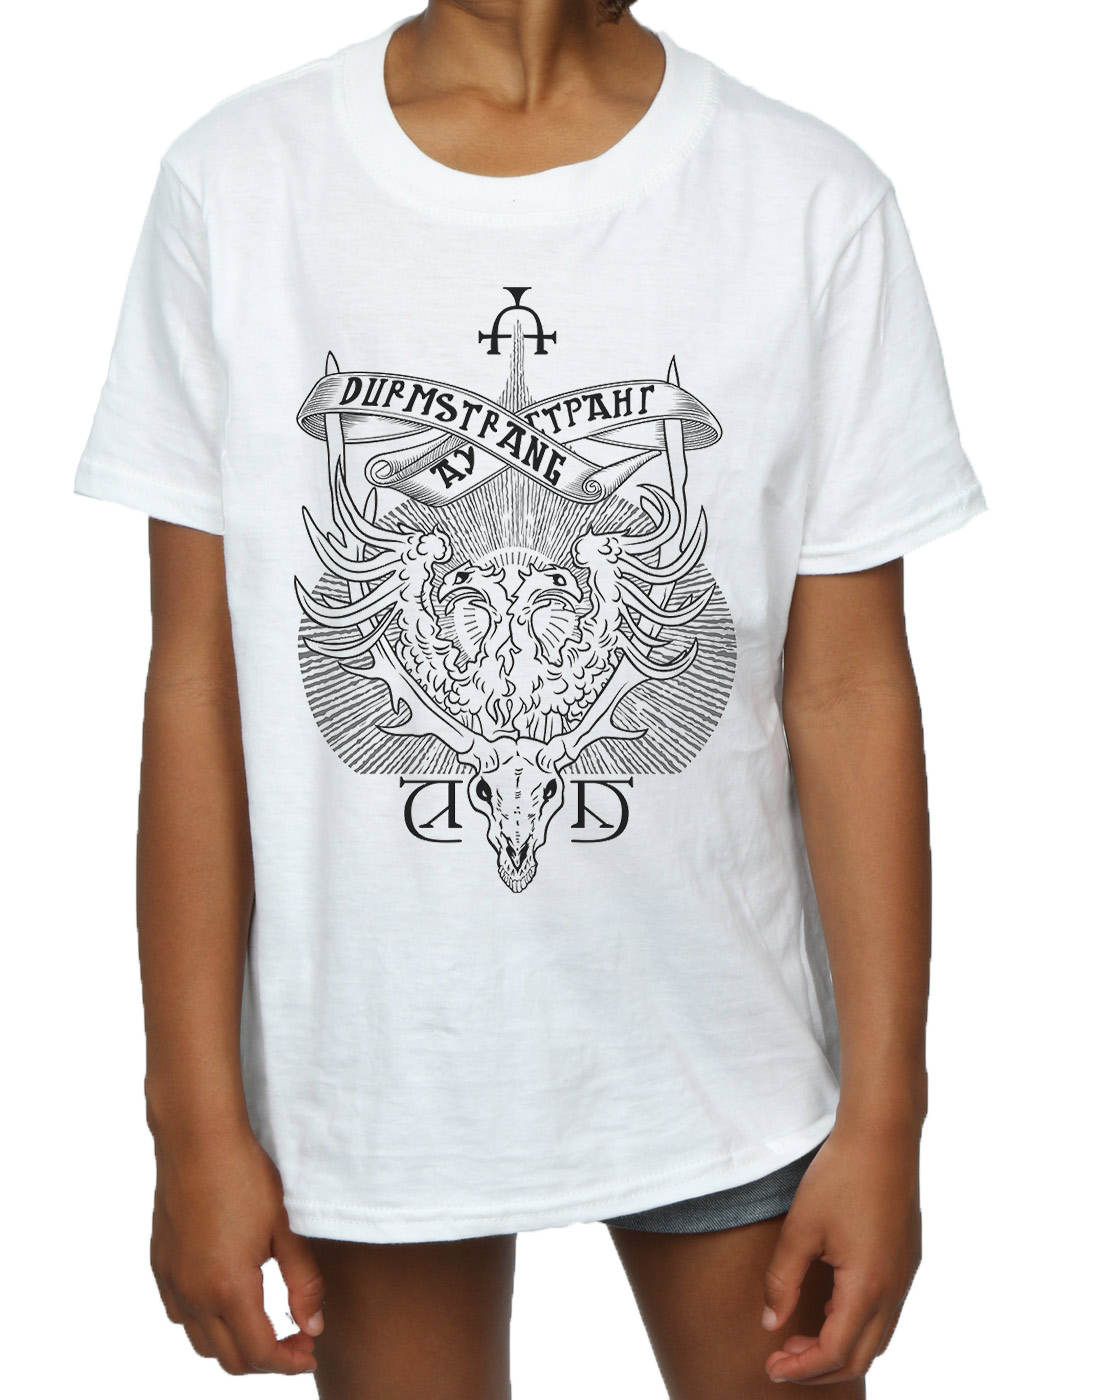 Harry Potter Girls Durmstrang Institute Crest T Shirt Ebay #harry potter #durmstrang #durmstrang institute #hp head canon #wayyy overdue #but consider it a thankyou to all my new followers from the last week. ebay